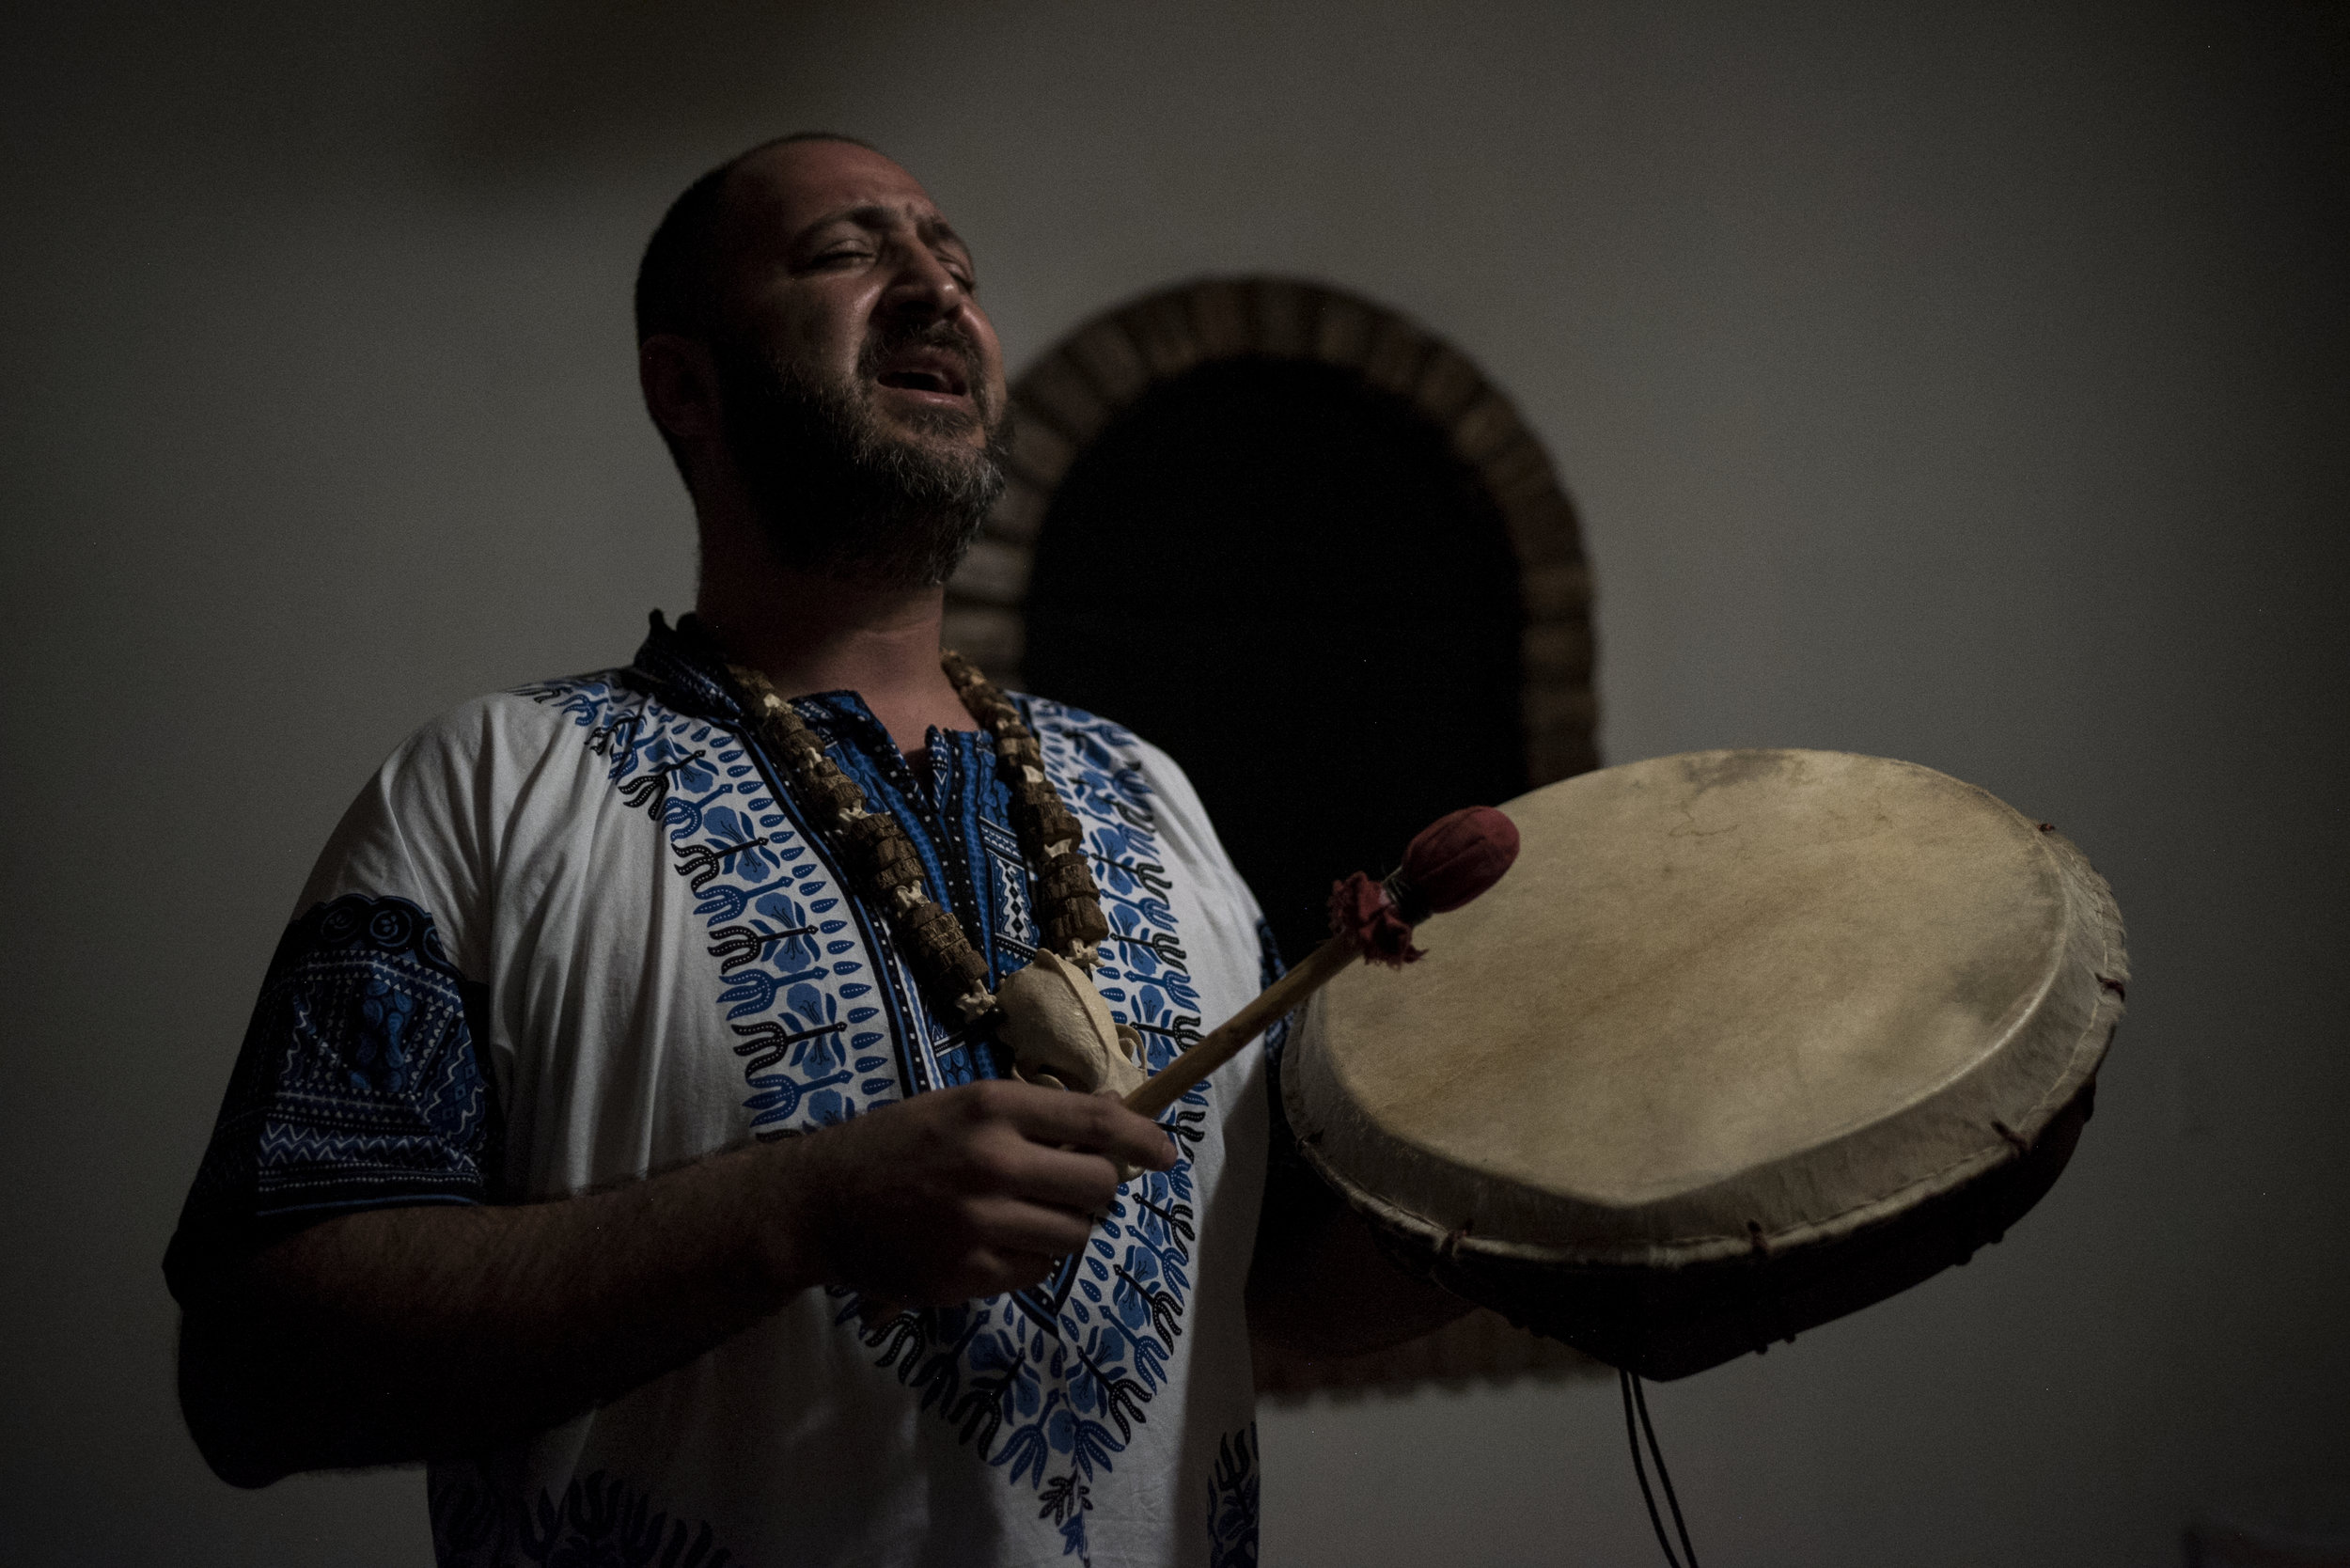 A shaman plays traditional music for Andrew Ortega while he is on Ayahuasca.